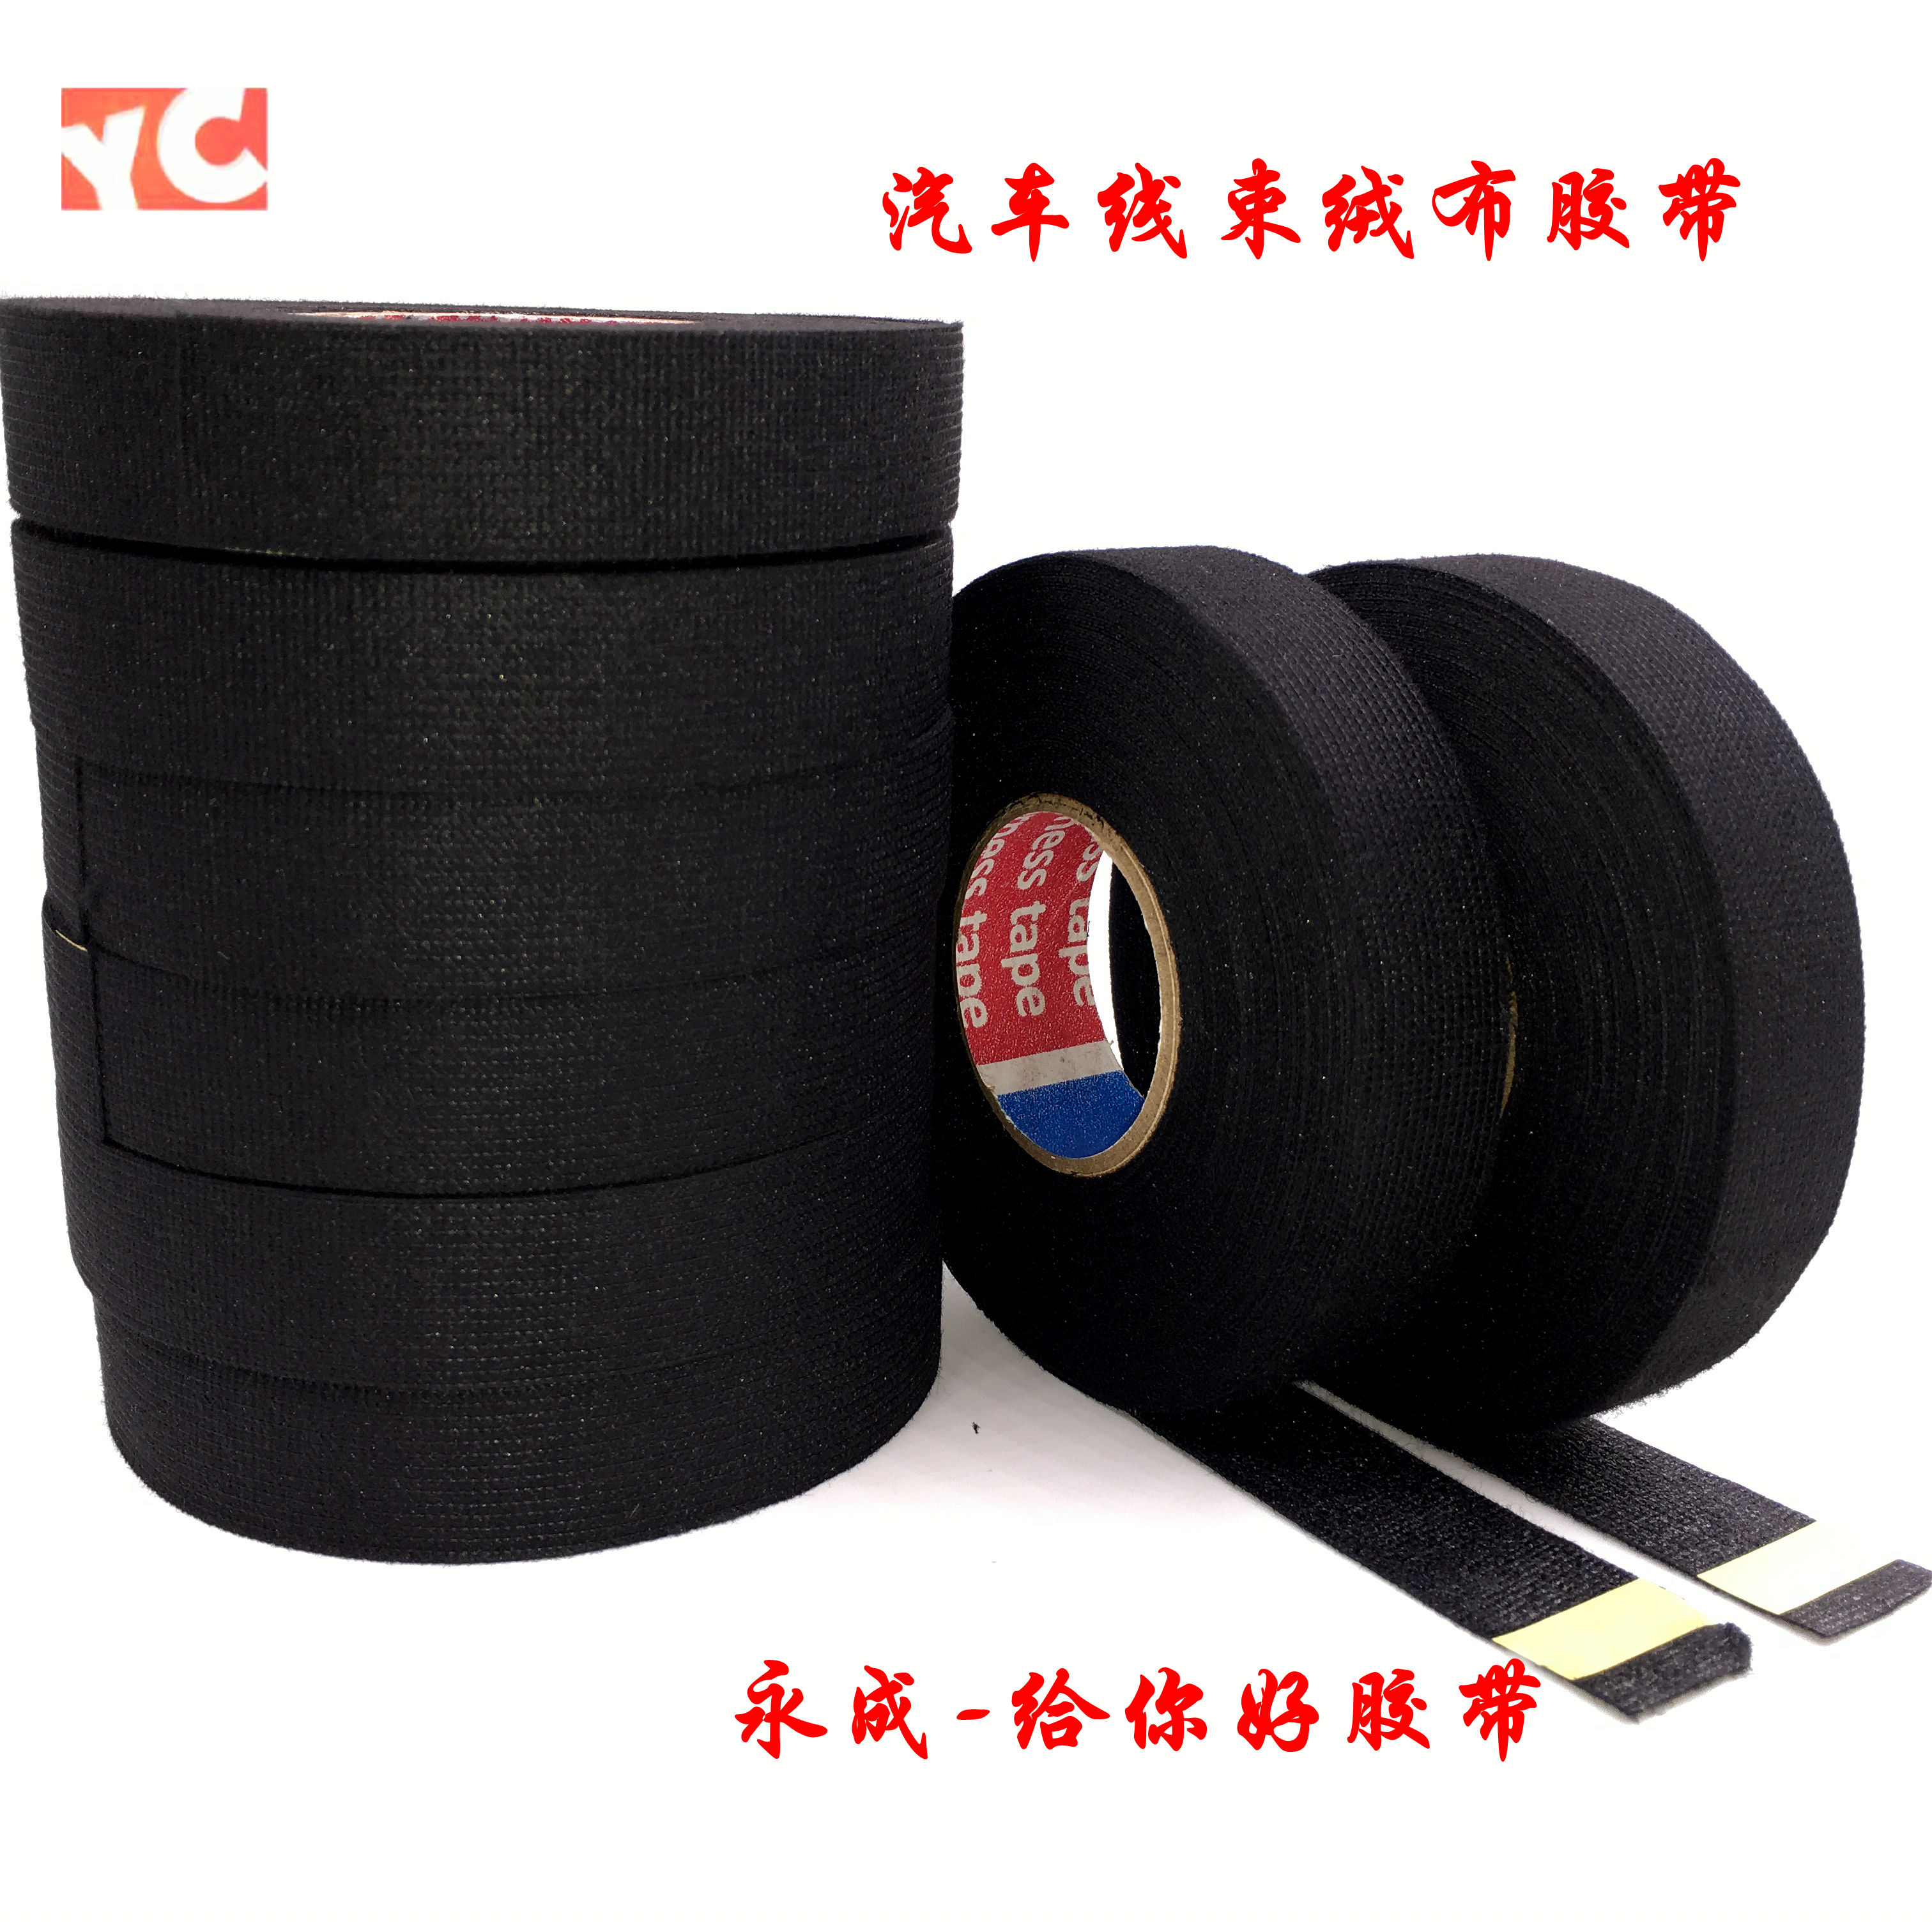 USD 4.91] Automobile wire harness Velvet tape cloth tape resistant on industrial wiping cloths, industrial lasers, industrial steel, industrial electric motors, industrial shock absorbers, industrial pressure gauges, industrial ultrasonic cleaning equipment, industrial packaging, industrial lubricants,